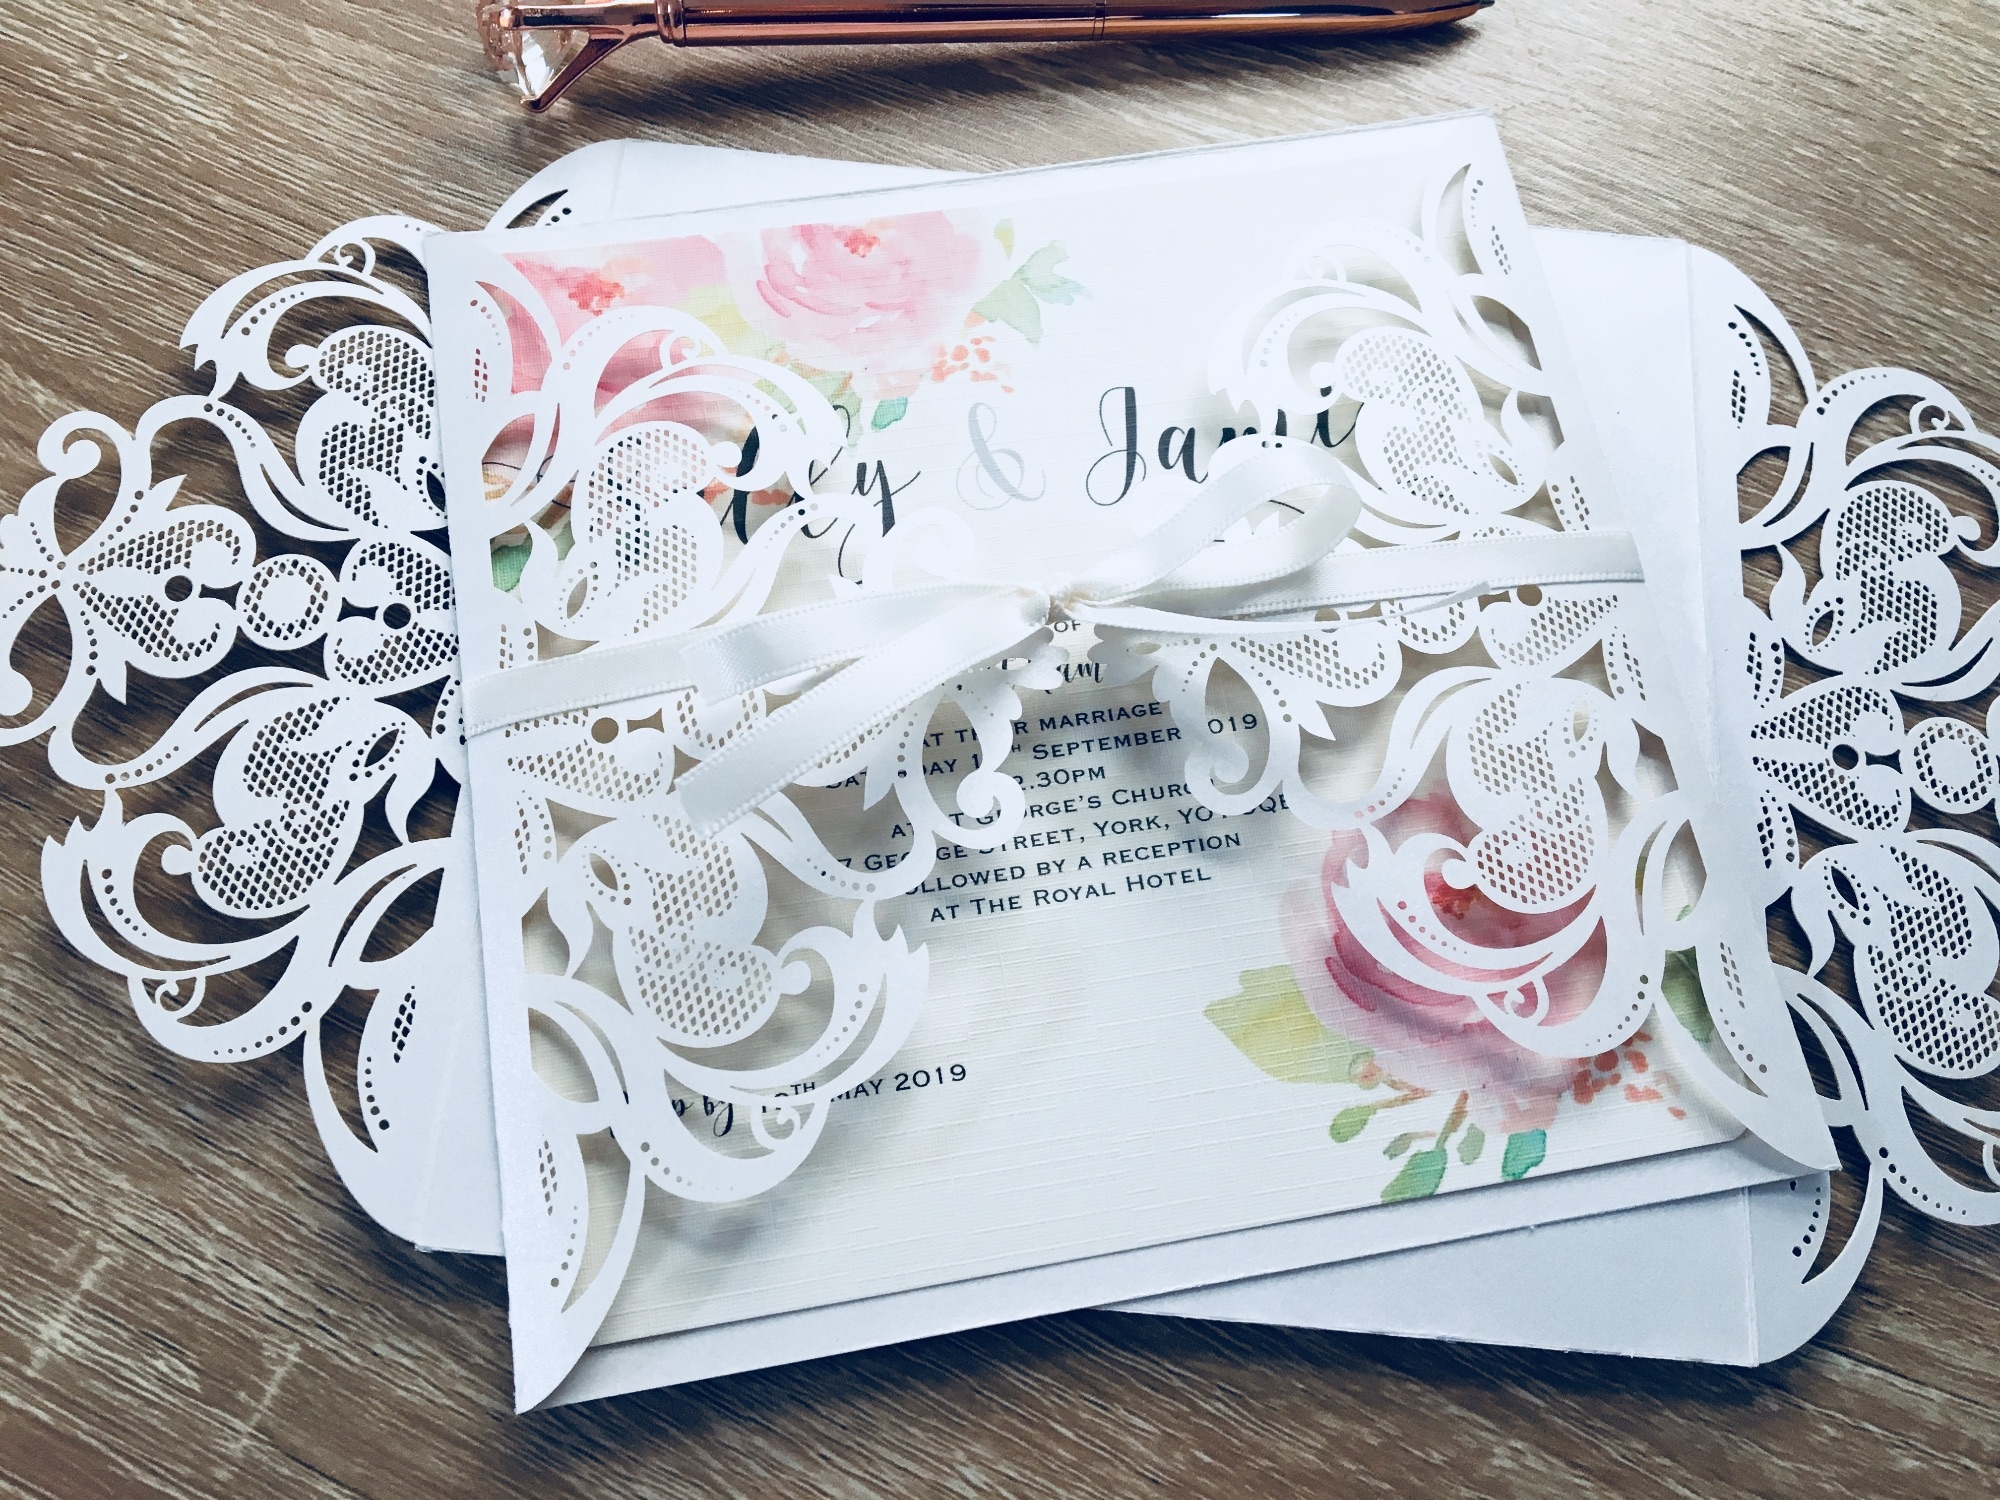 Laser cut invitation with pink rose inserts